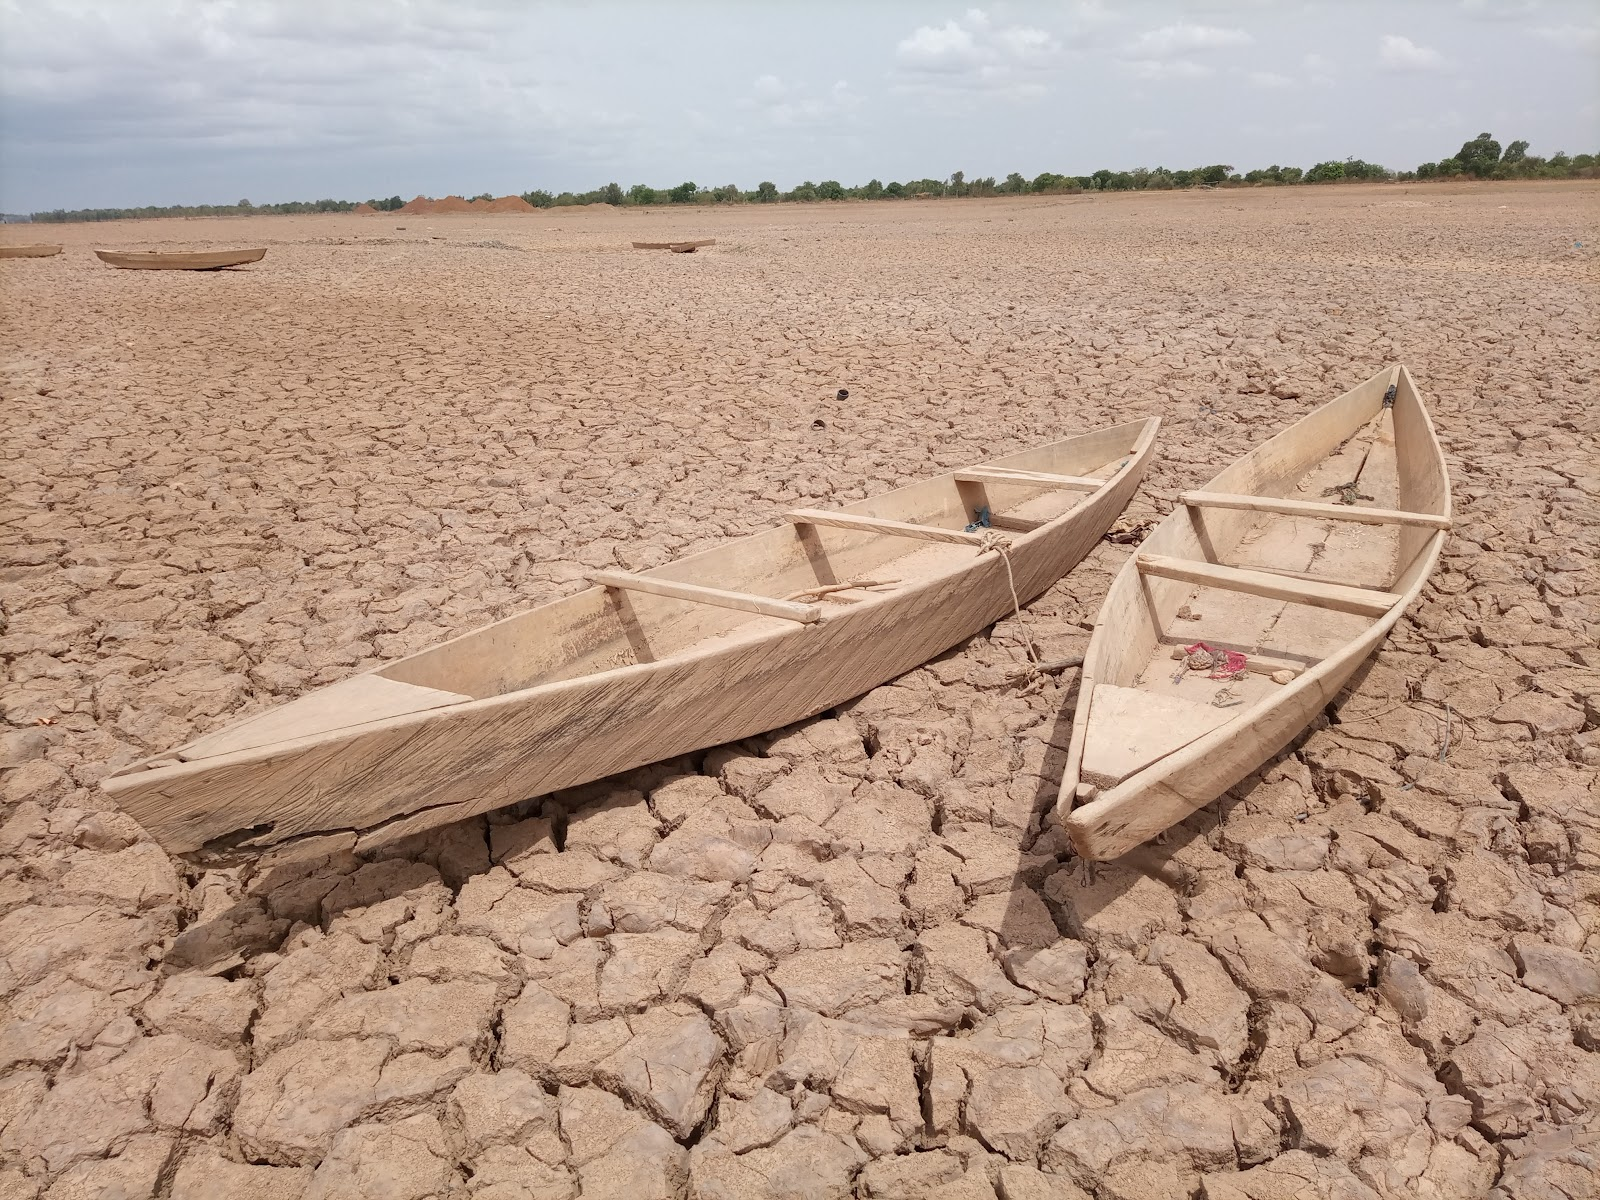 Two abandoned boats on a dried up lake.